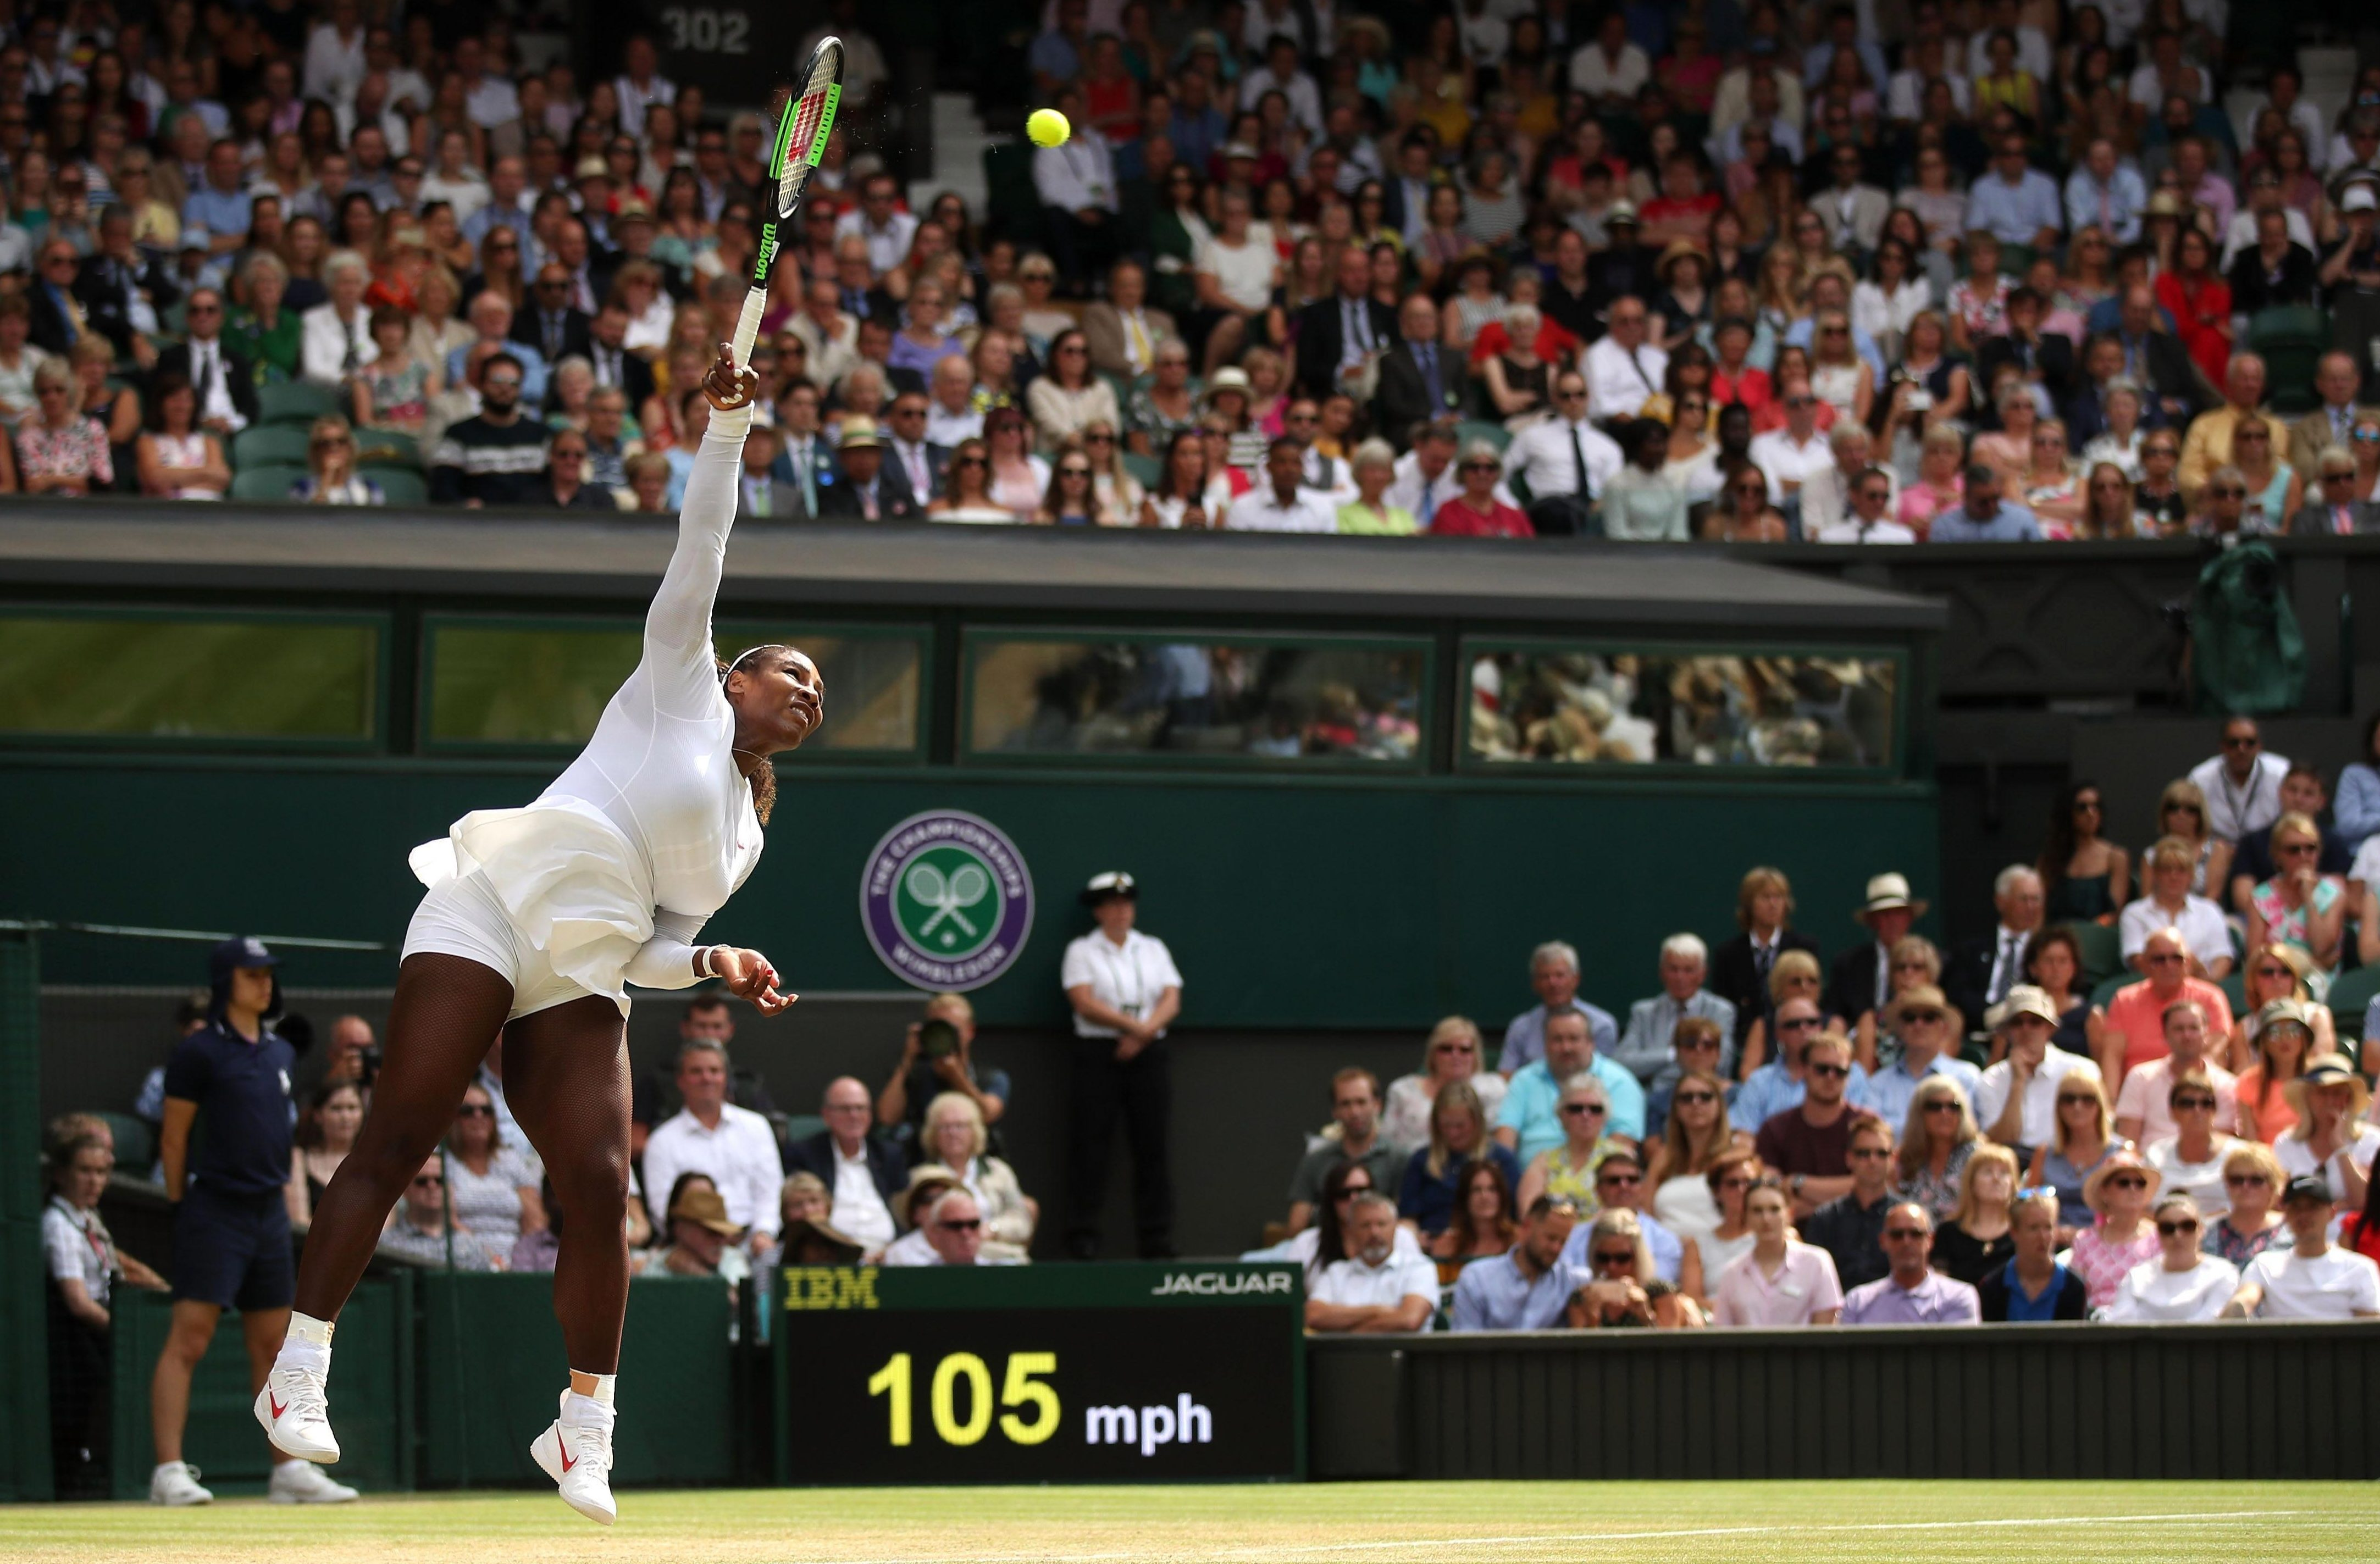 Supermum Serena Williams glided to another awesome win as she targets another historic achievement at SW19